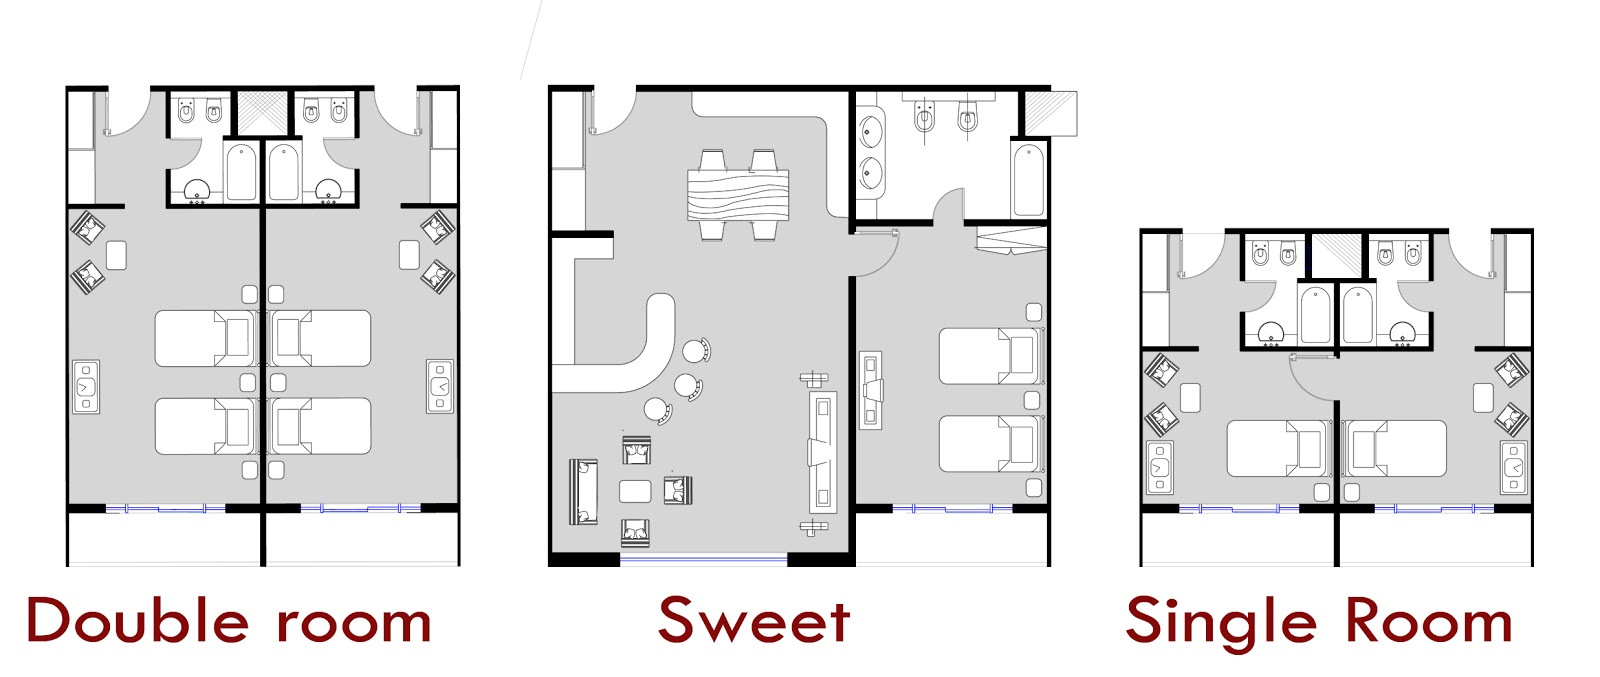 Hotel Room Plans U0026 Layouts. Amazing Pictures